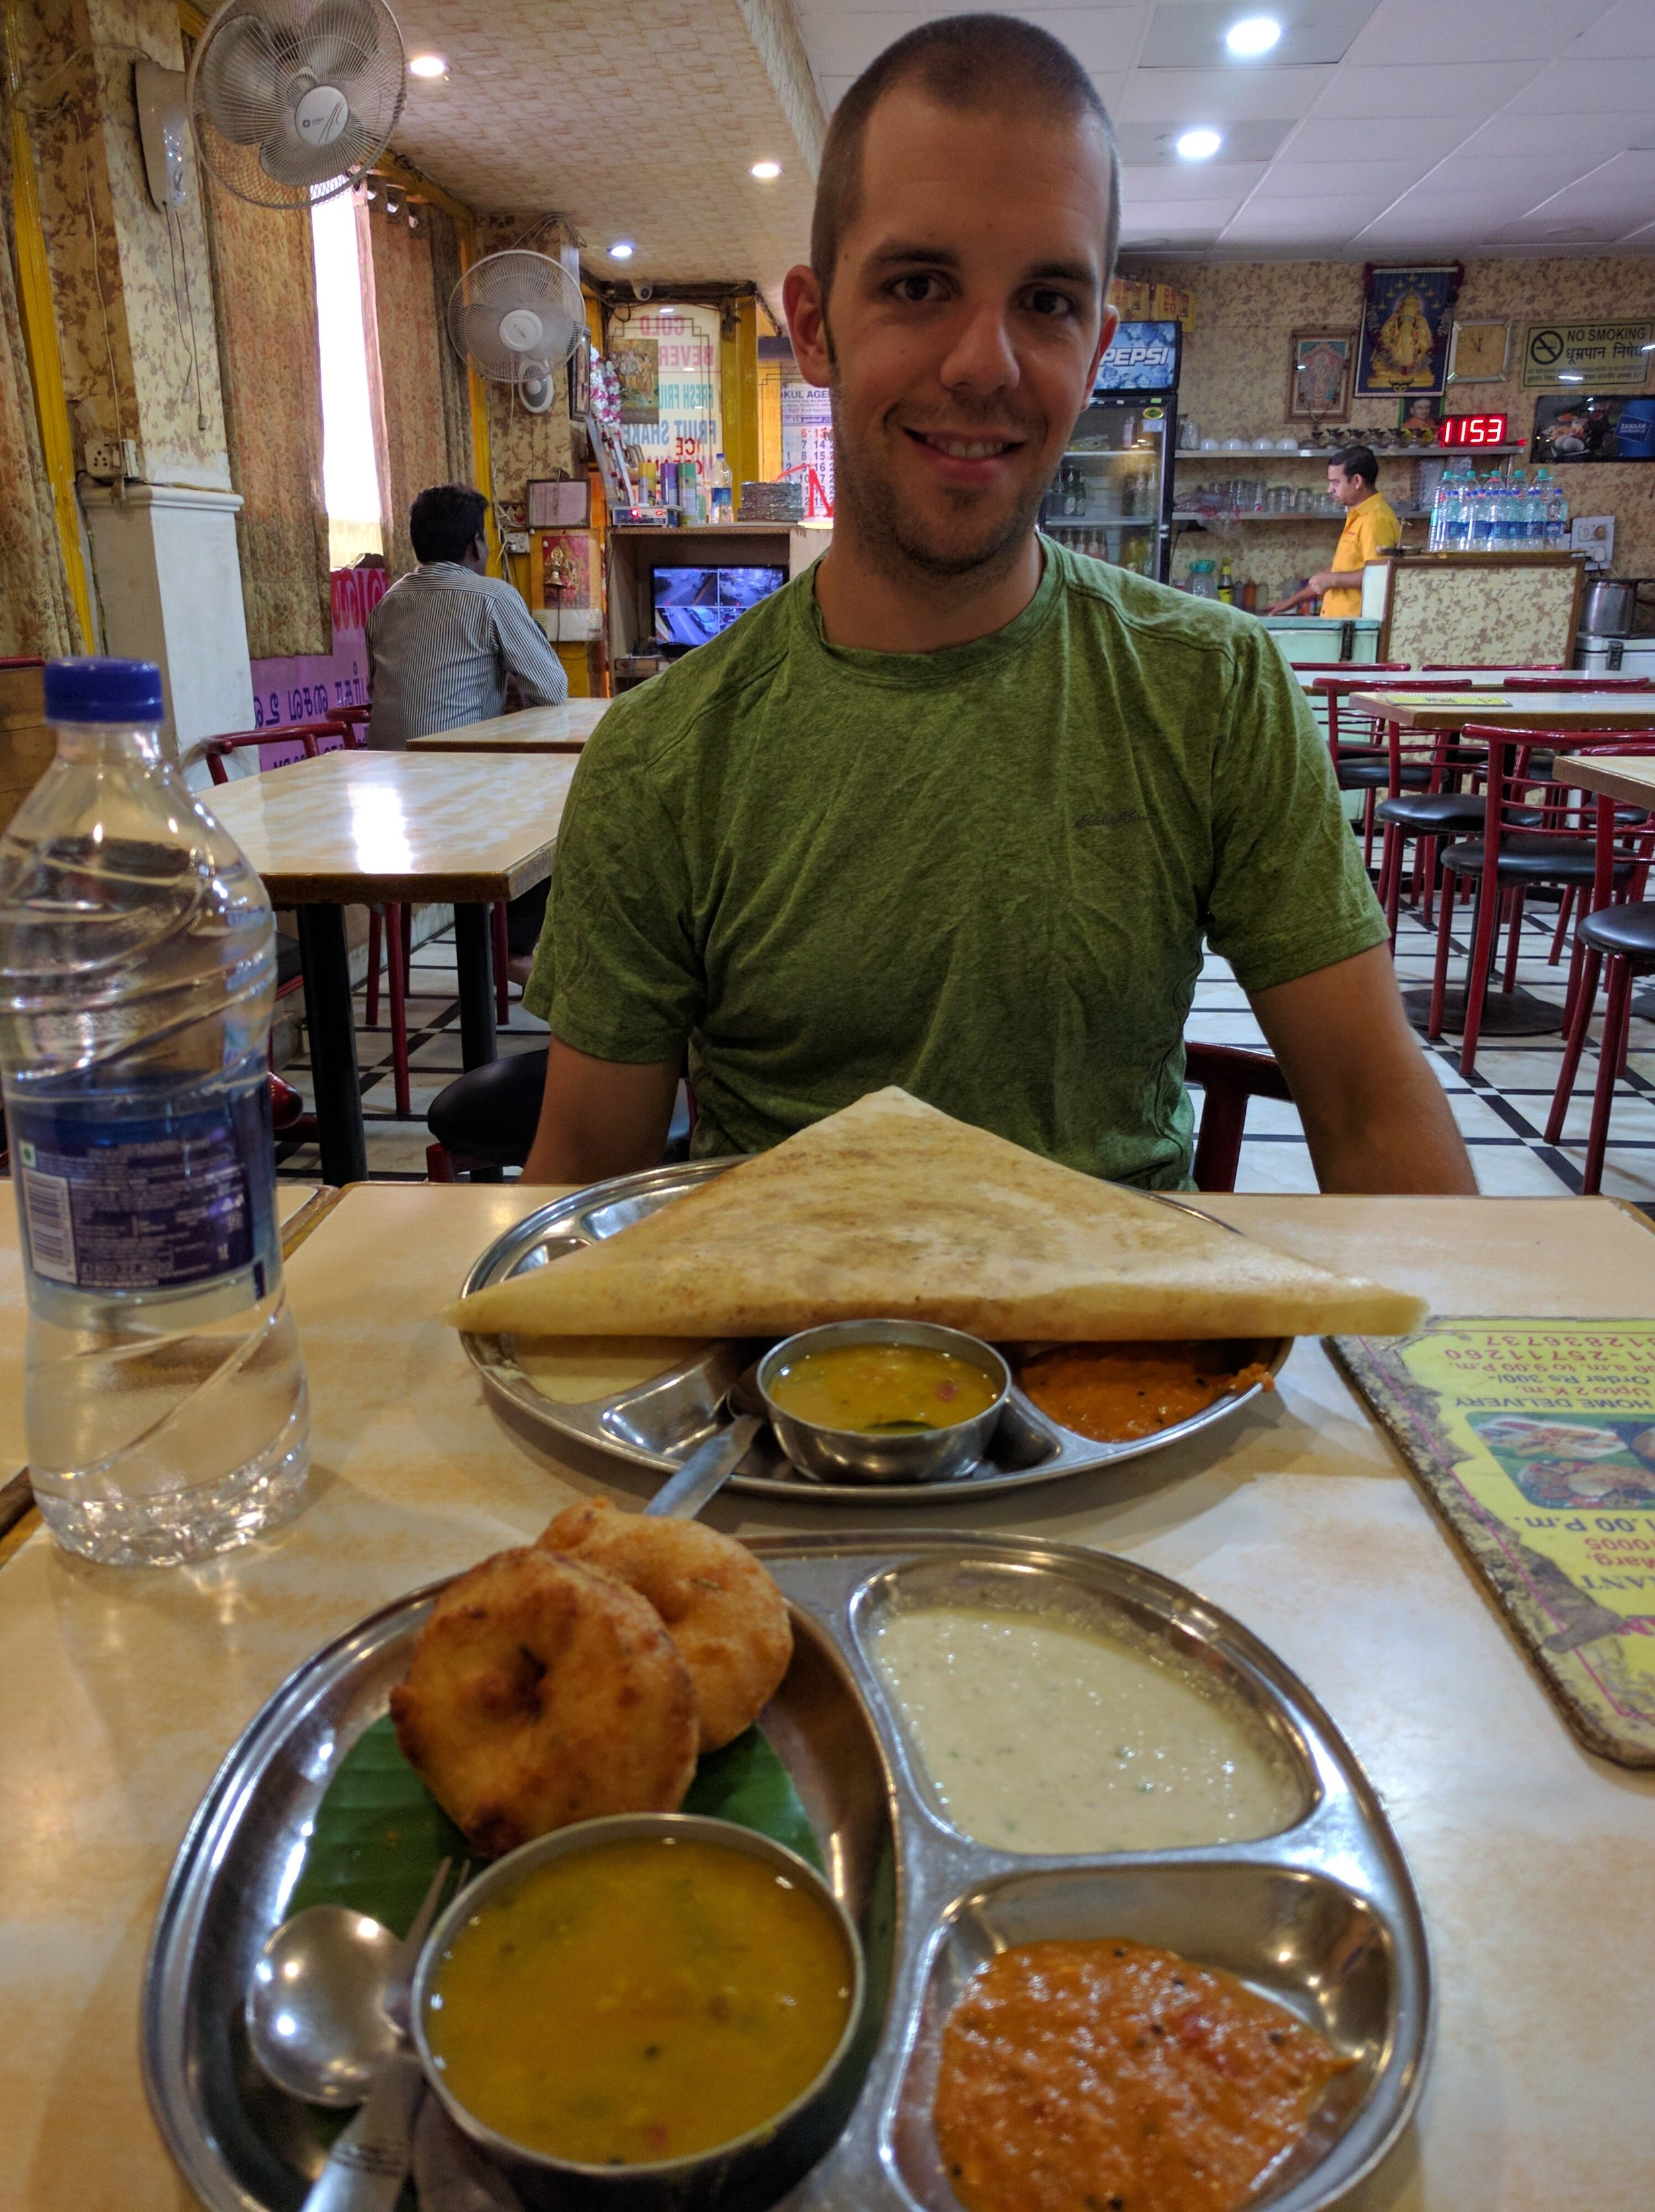 Before coming to here, I don't think Jeff had ever tried Indian food. This picture is of our breakfast in Delhi. We wandered into a vegetarian resturant and ordered vada (sort of a savory donut), and dosa (the large crepe) stuffed with cooked onion. The food came with lentils (the yellow bowl), and 2 other sauces (no idea what they were).